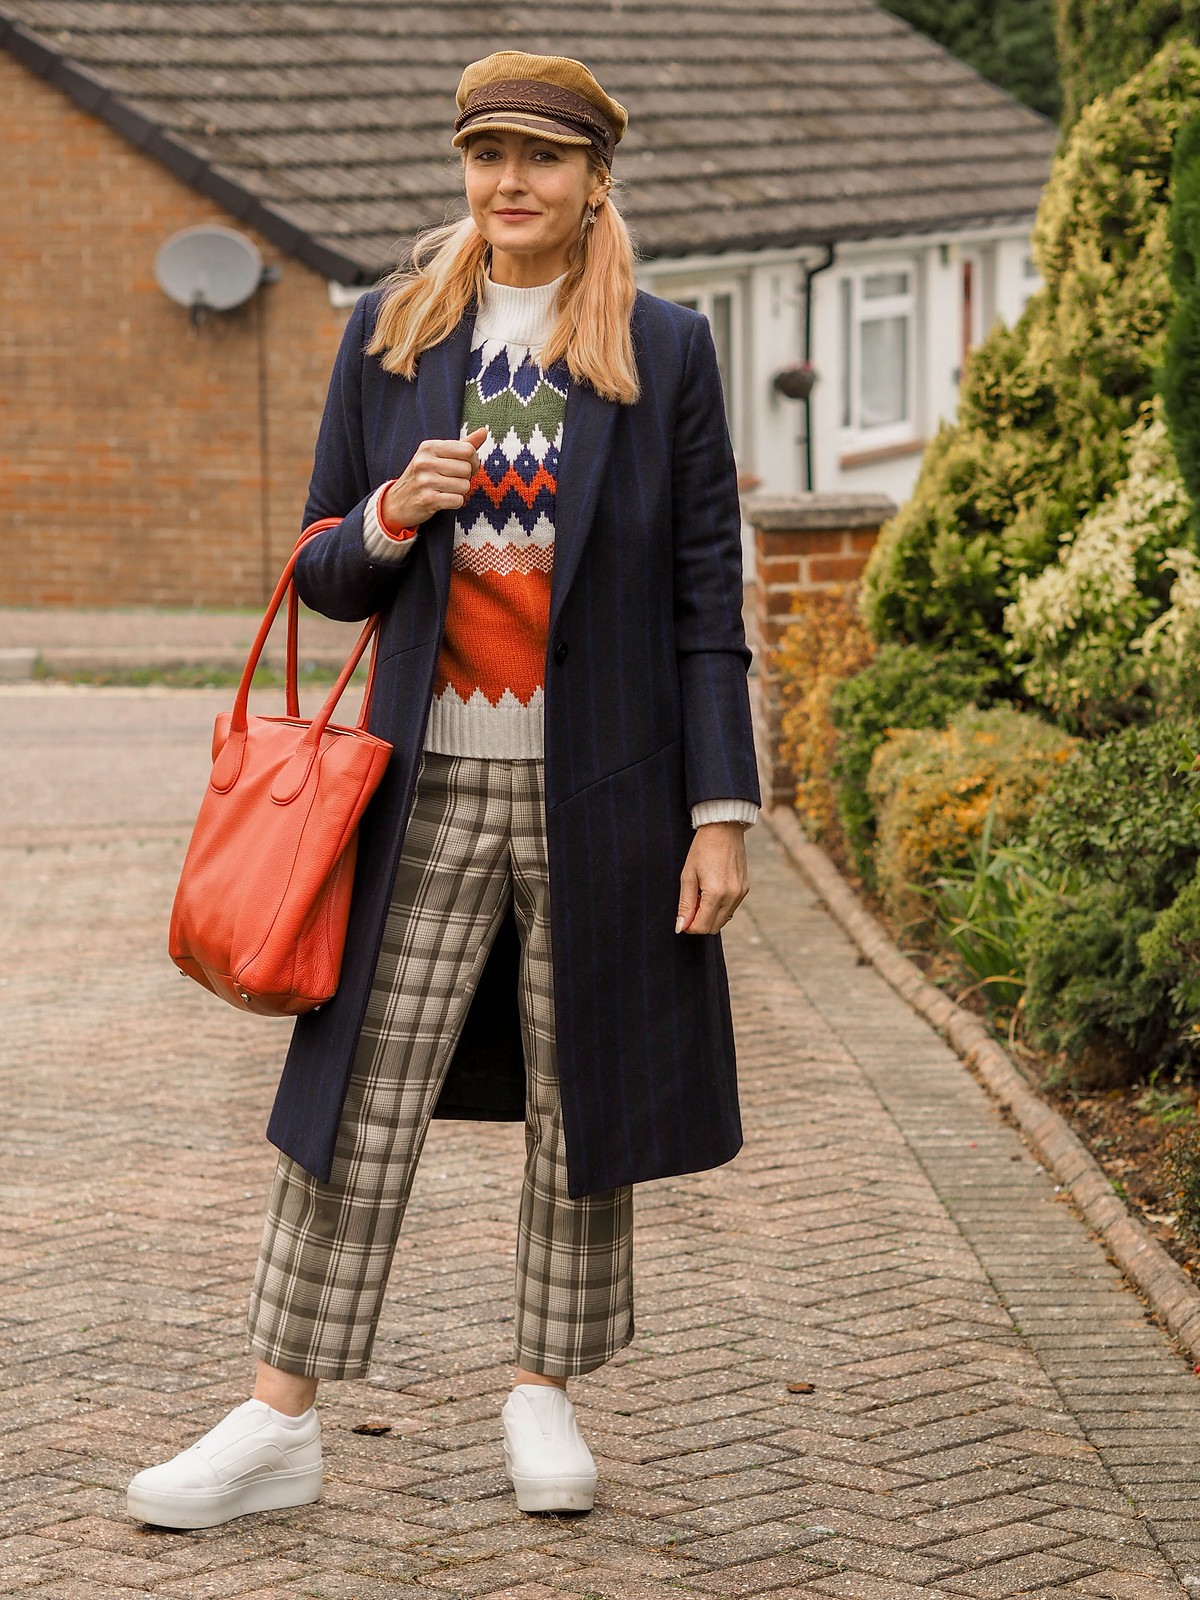 Styling a Classic Tailored Coat With Bold Winter Patterns (navy pinstripe coat, orange, green and white Nordic patterned sweater, green check trousers, orange tote bag, white chunky trainers, camel baker boy hat) | Not Dressed As Lamb, Over 40 Fashion